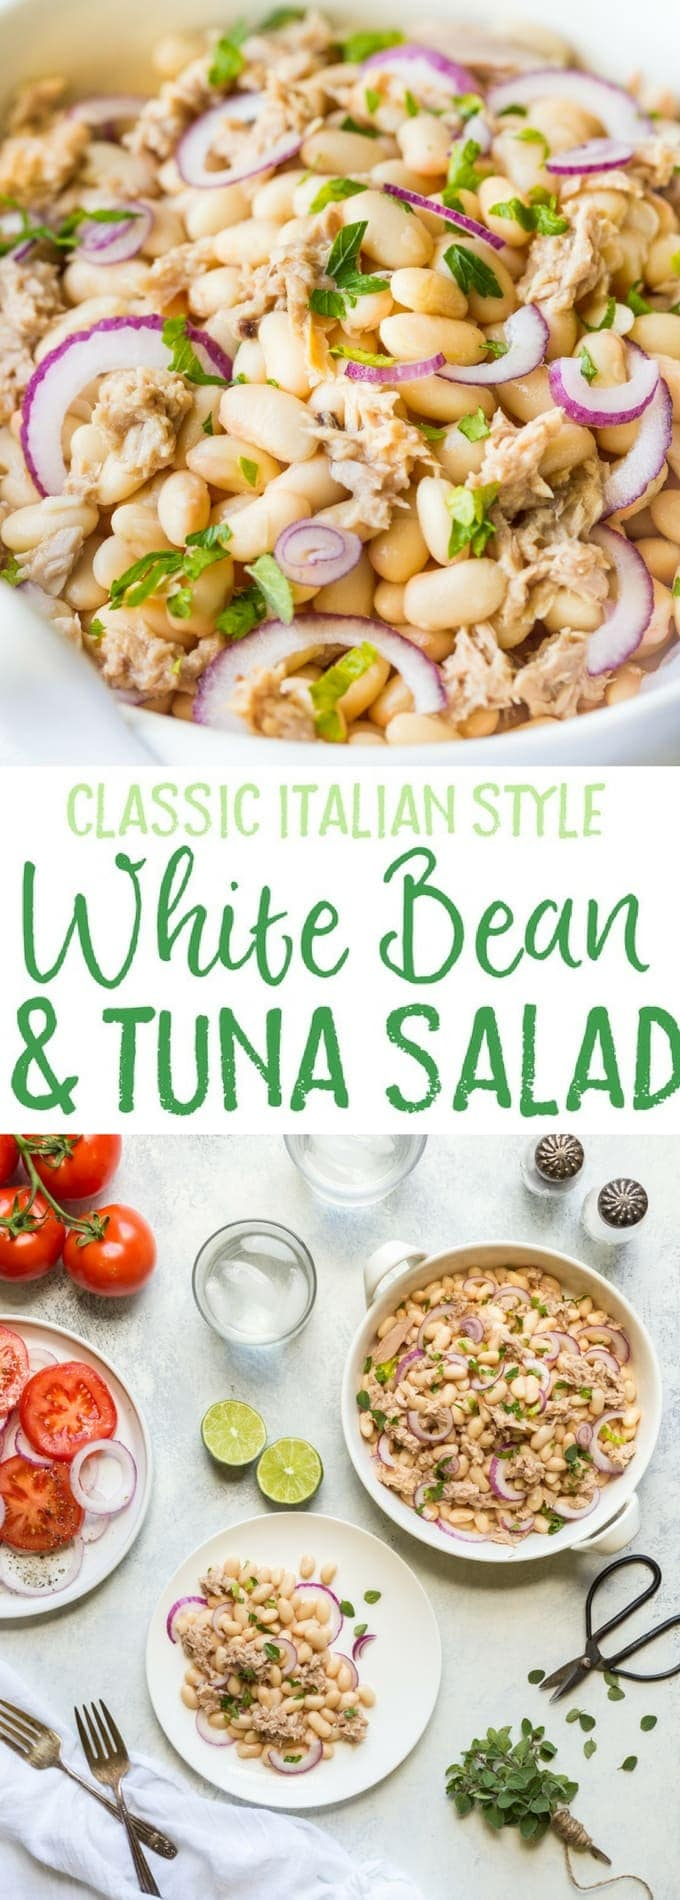 You'll love my Tuna White Bean Salad with Red Wine vinegar dressing, and no mayo! It's packed full of protein and contains, tuna, white beans and fresh parsley. A really healthy, gluten free, low calorie lunch or dinner option, this salad is ready to eat in less than 5 Minutes!